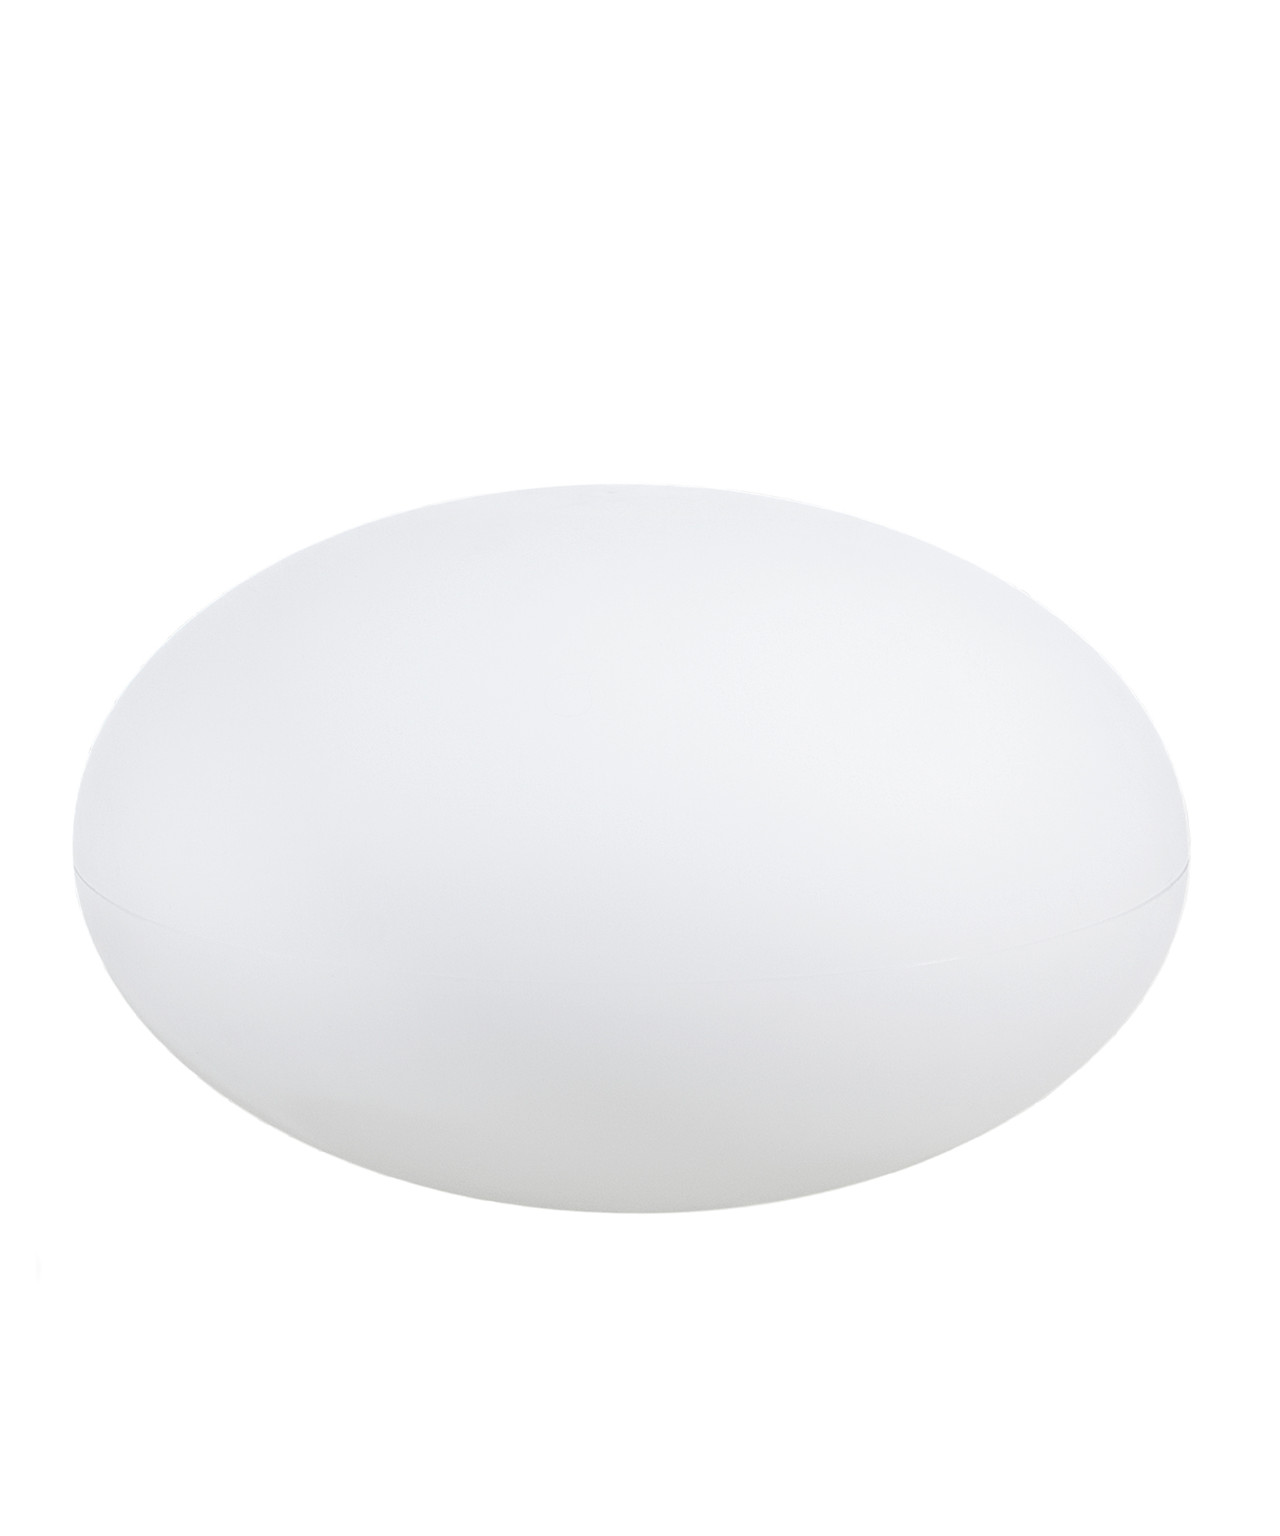 Eggy pop in bordlampe/gulvlampe medium ø55